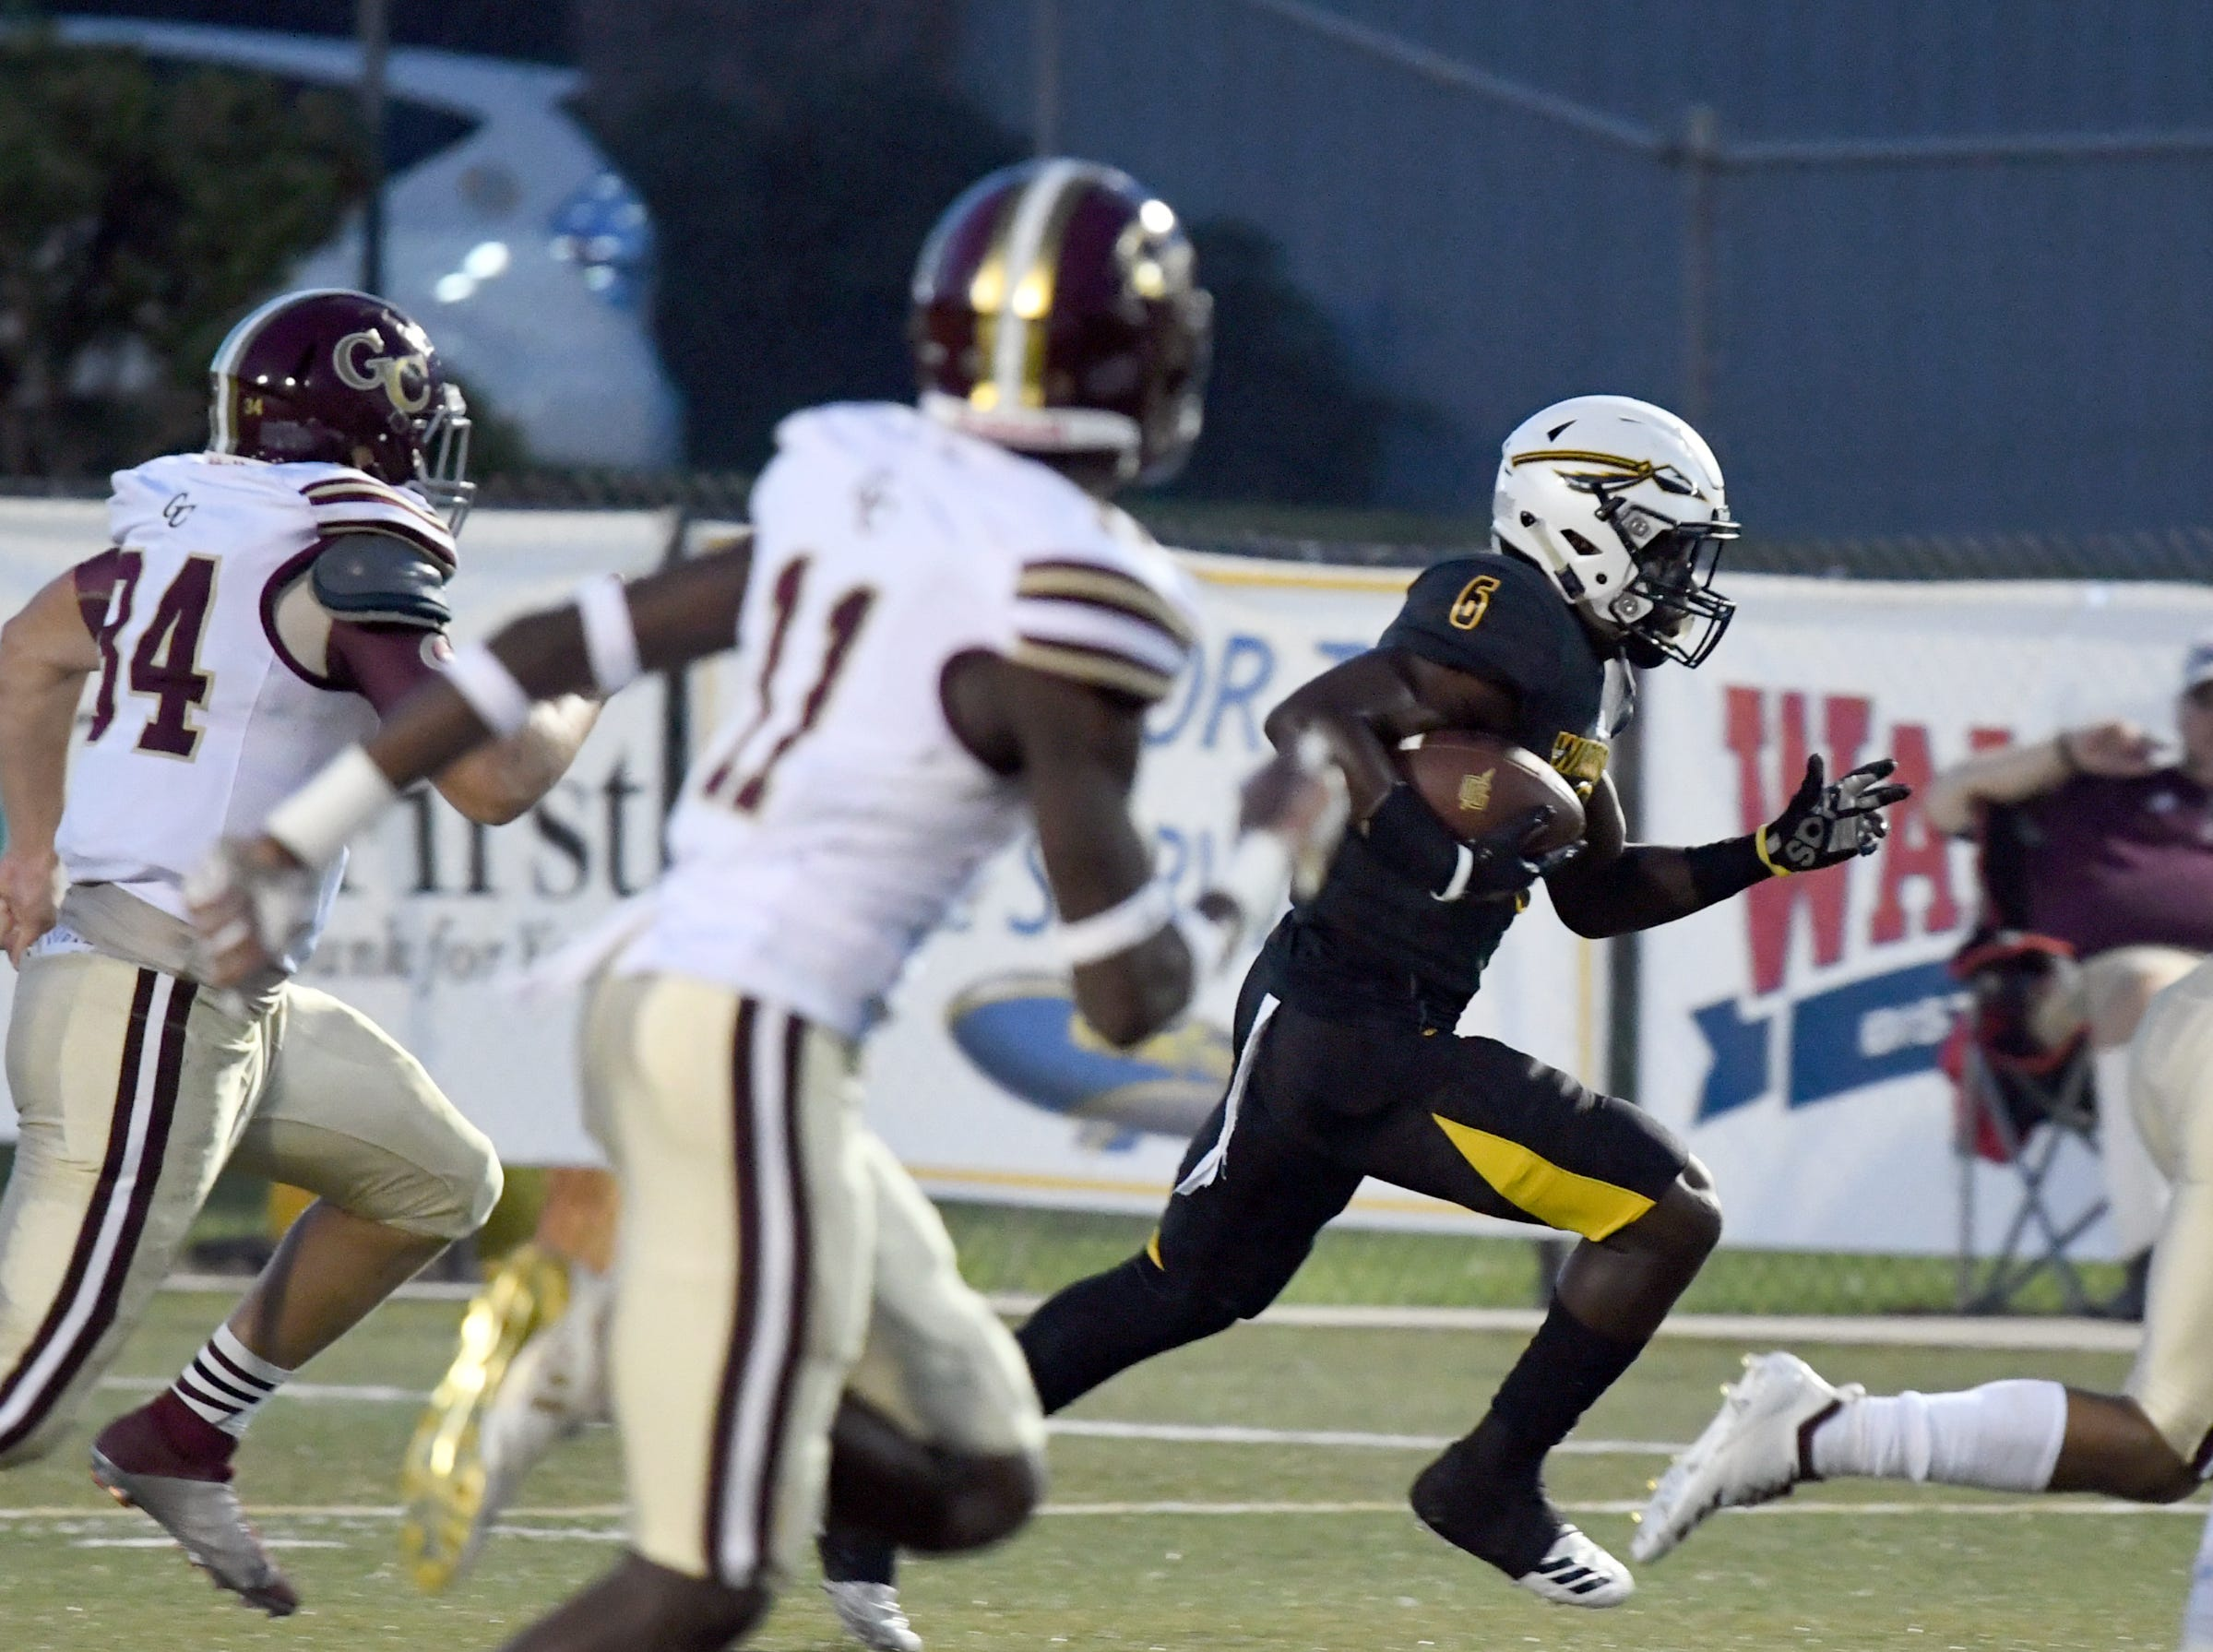 Oak Grove's Jarius Reimonenq carries the ball in a game against George County in Hattiesburg on Friday, September 21, 2018.